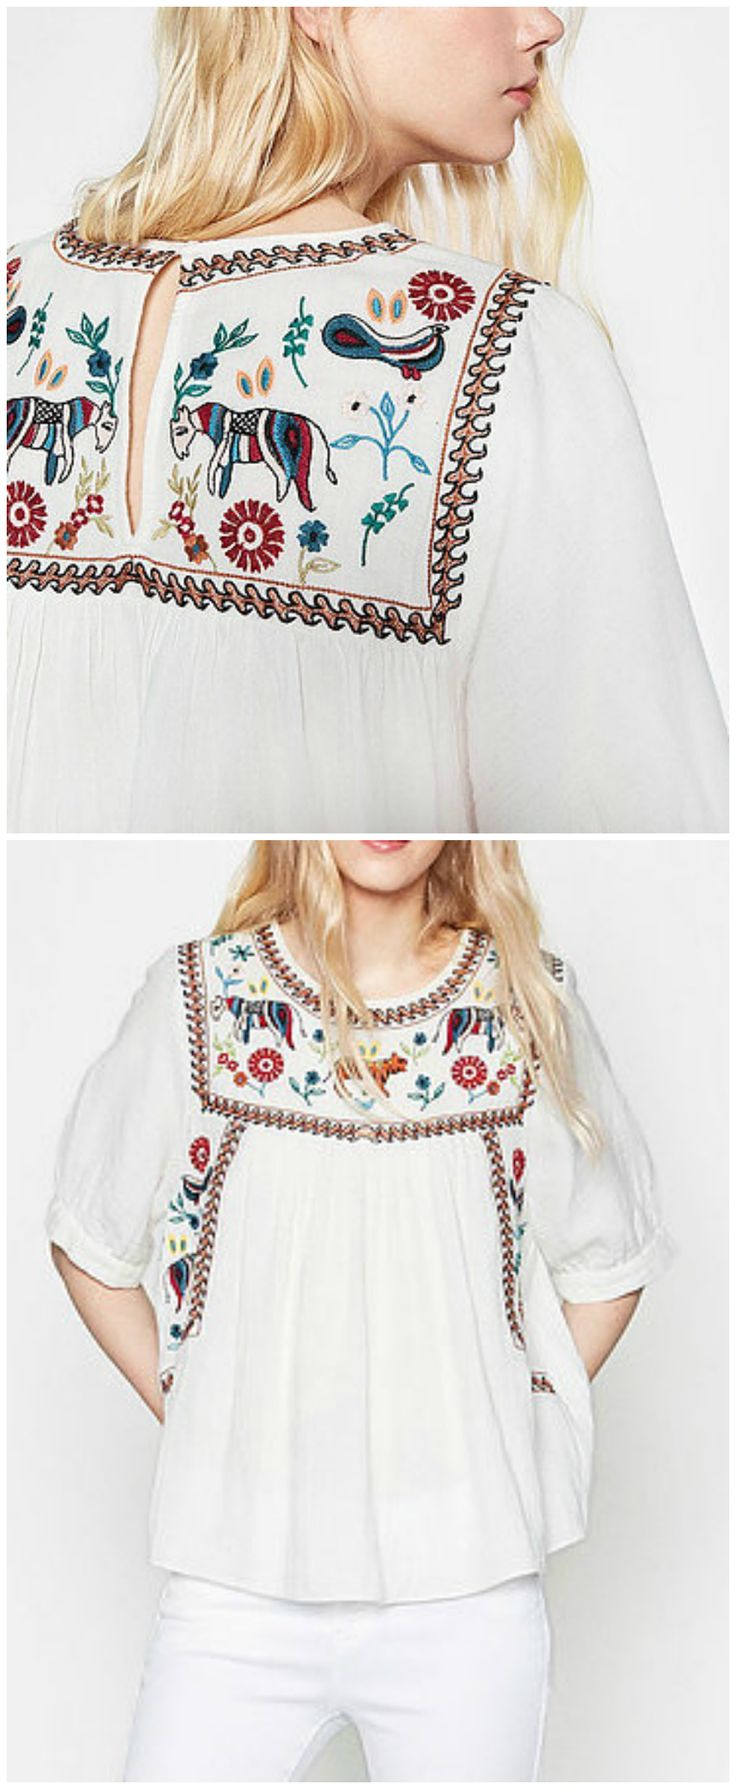 - A Gypsy Embroidery Top from Pasaboho. This top exhibits brilliant colours with unique embroidered pattern.